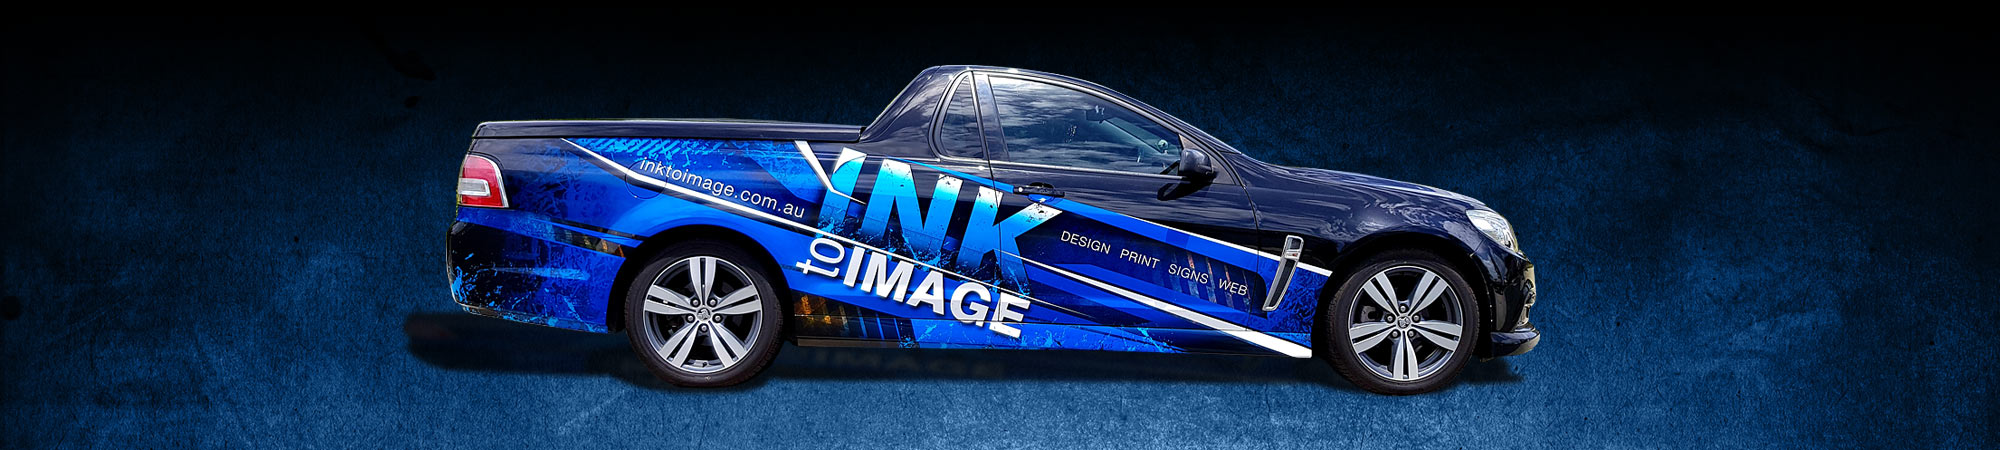 ink-to-image-signage-sunshine-coast